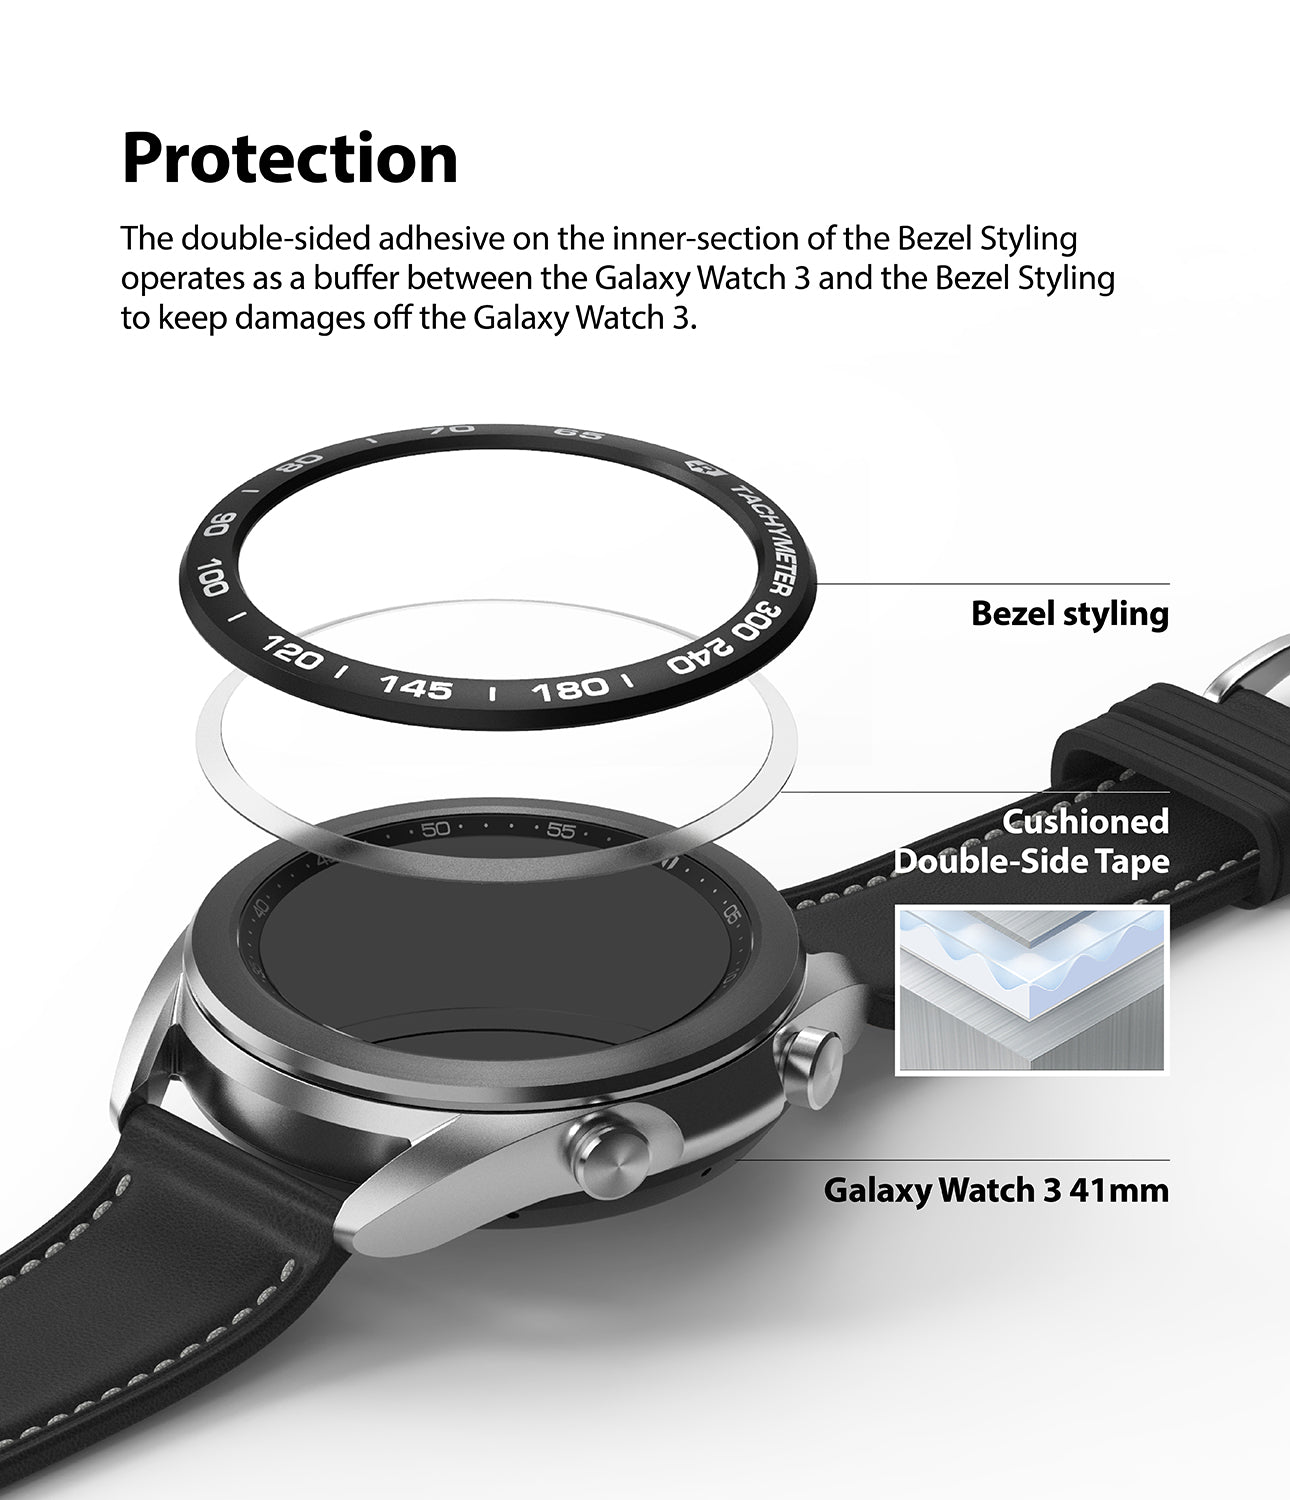 the double-sided adhesive on the inner section of the bezel styling operates as a buffer between the galaxy watch 3 and the bezel styling to keep damages off the galaxy watch 3